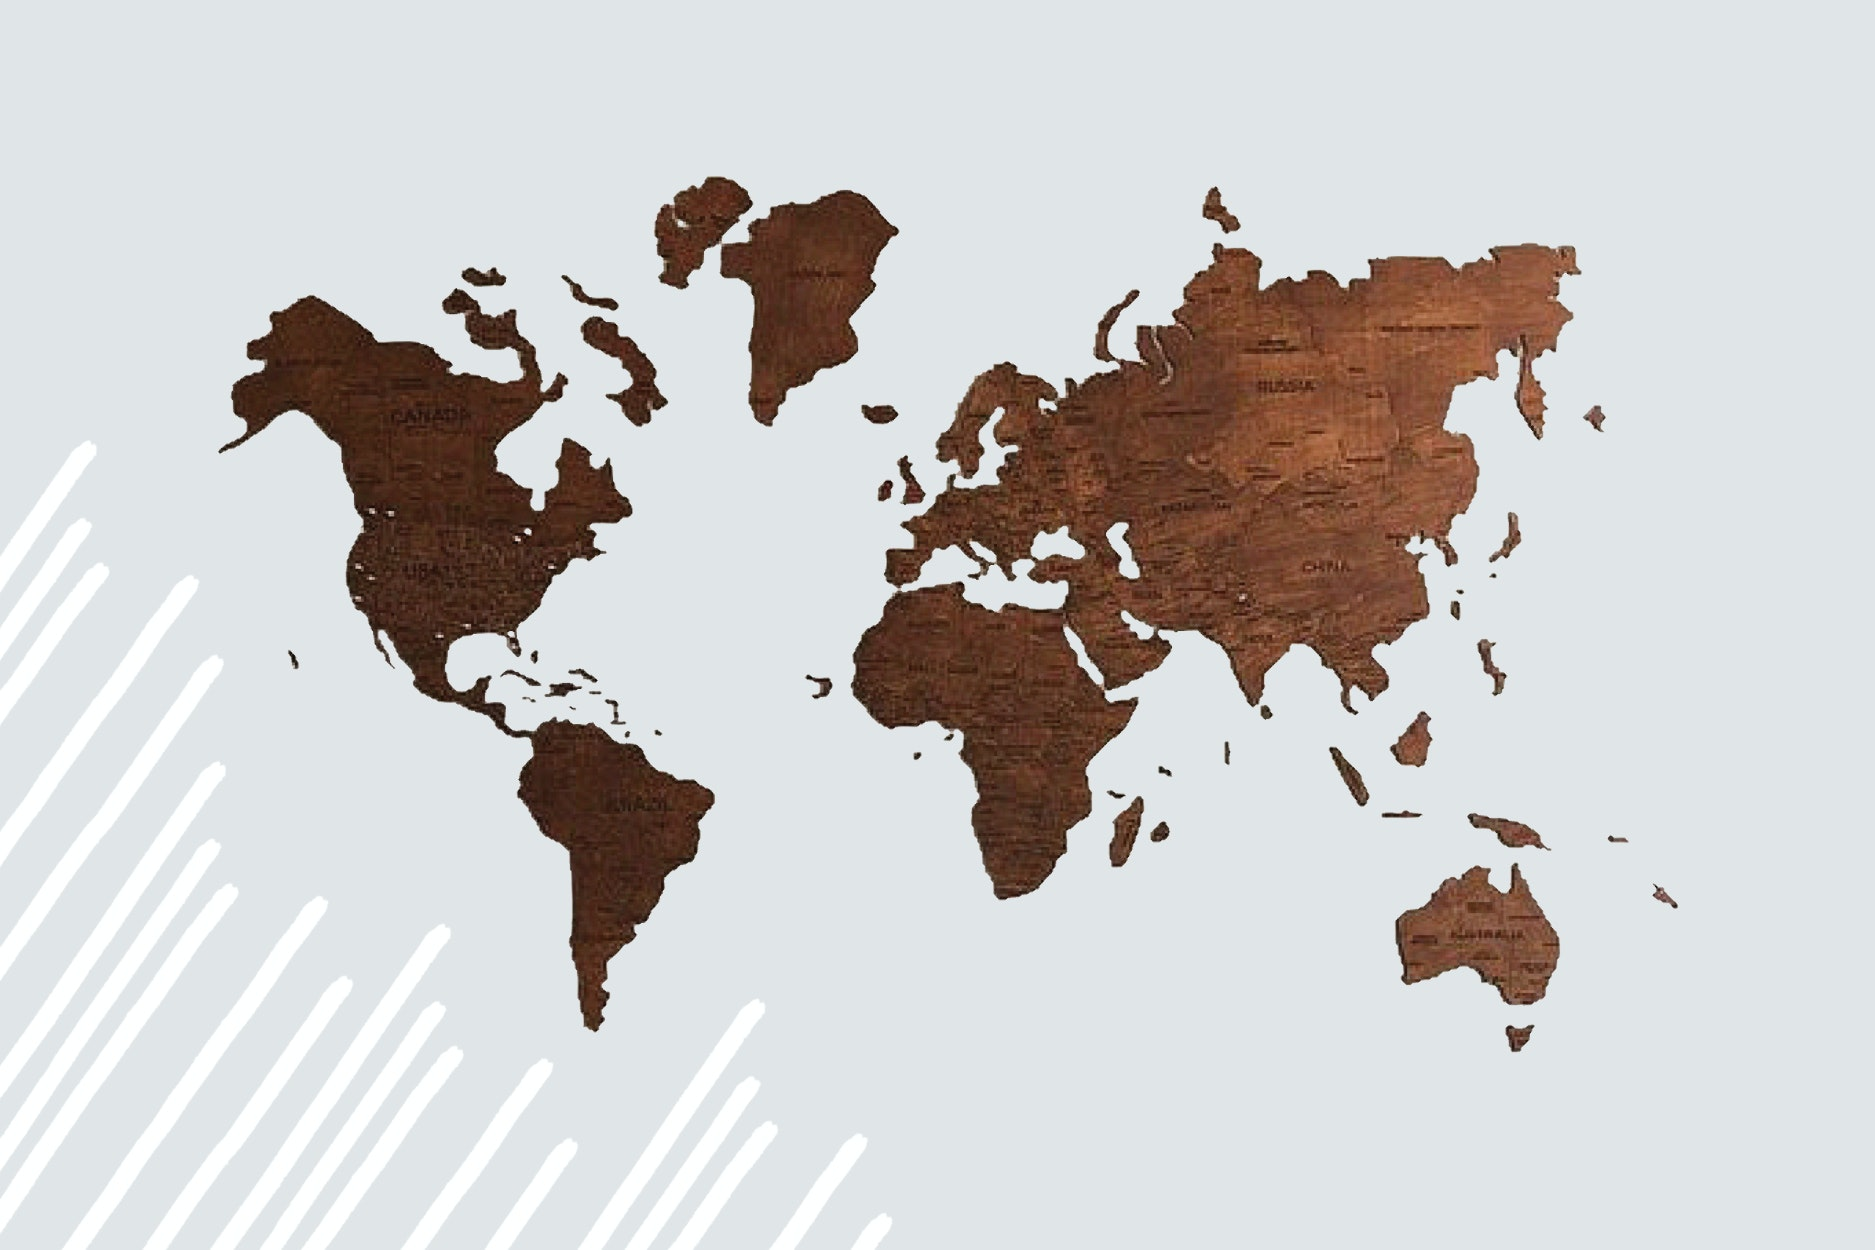 Personalize a wooden wall map with colors, sizes, or places traveled.